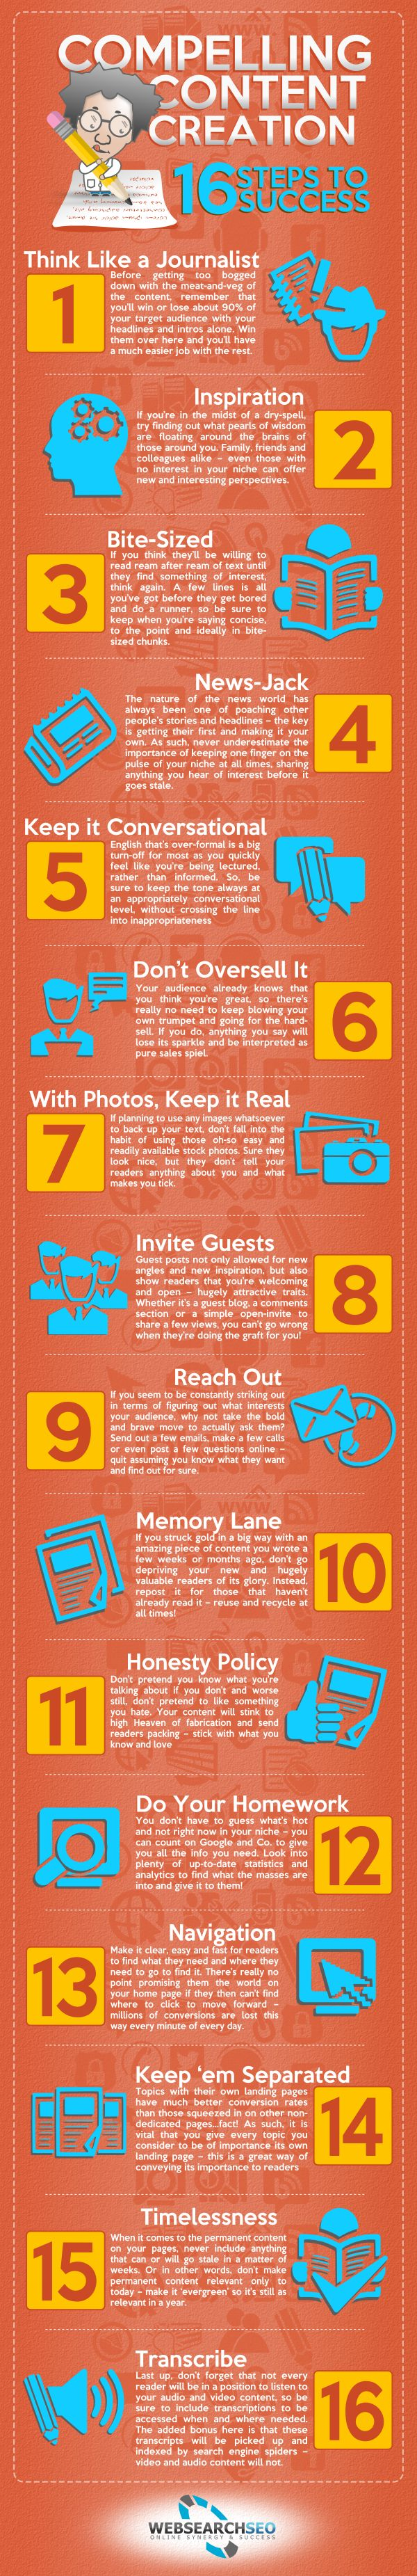 Content Creation - Complete Guide #infographic #ContentCreation #Content